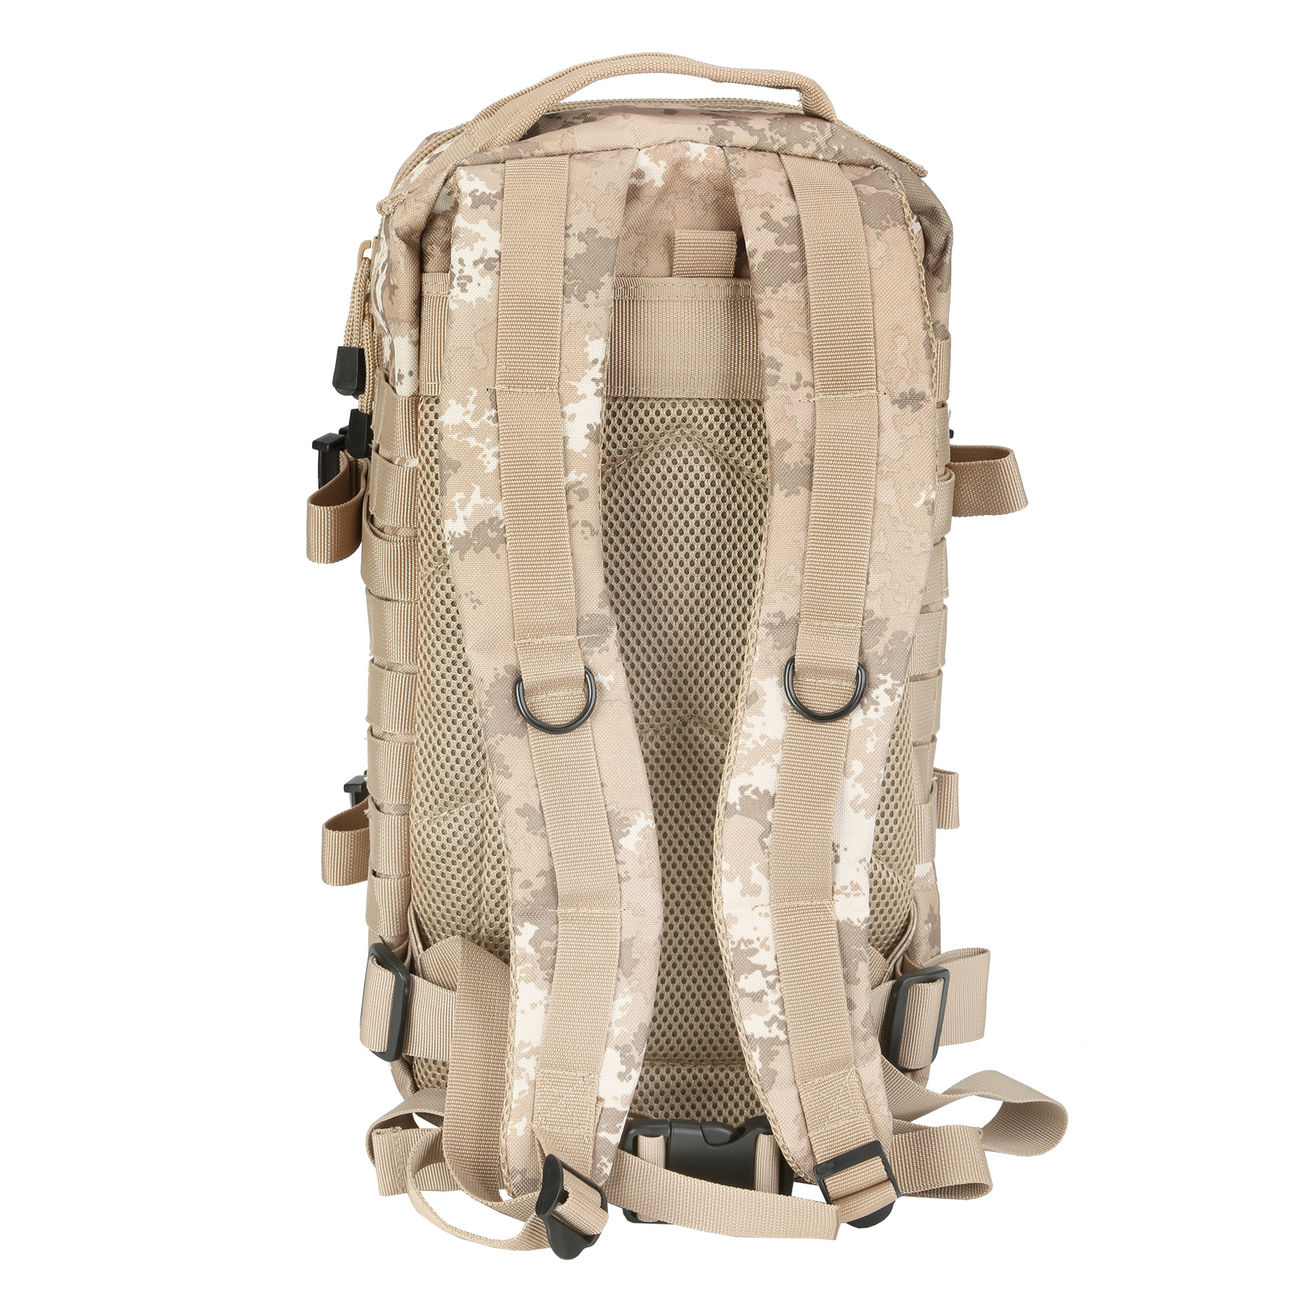 MFH Rucksack Assault I vegetato desert 7